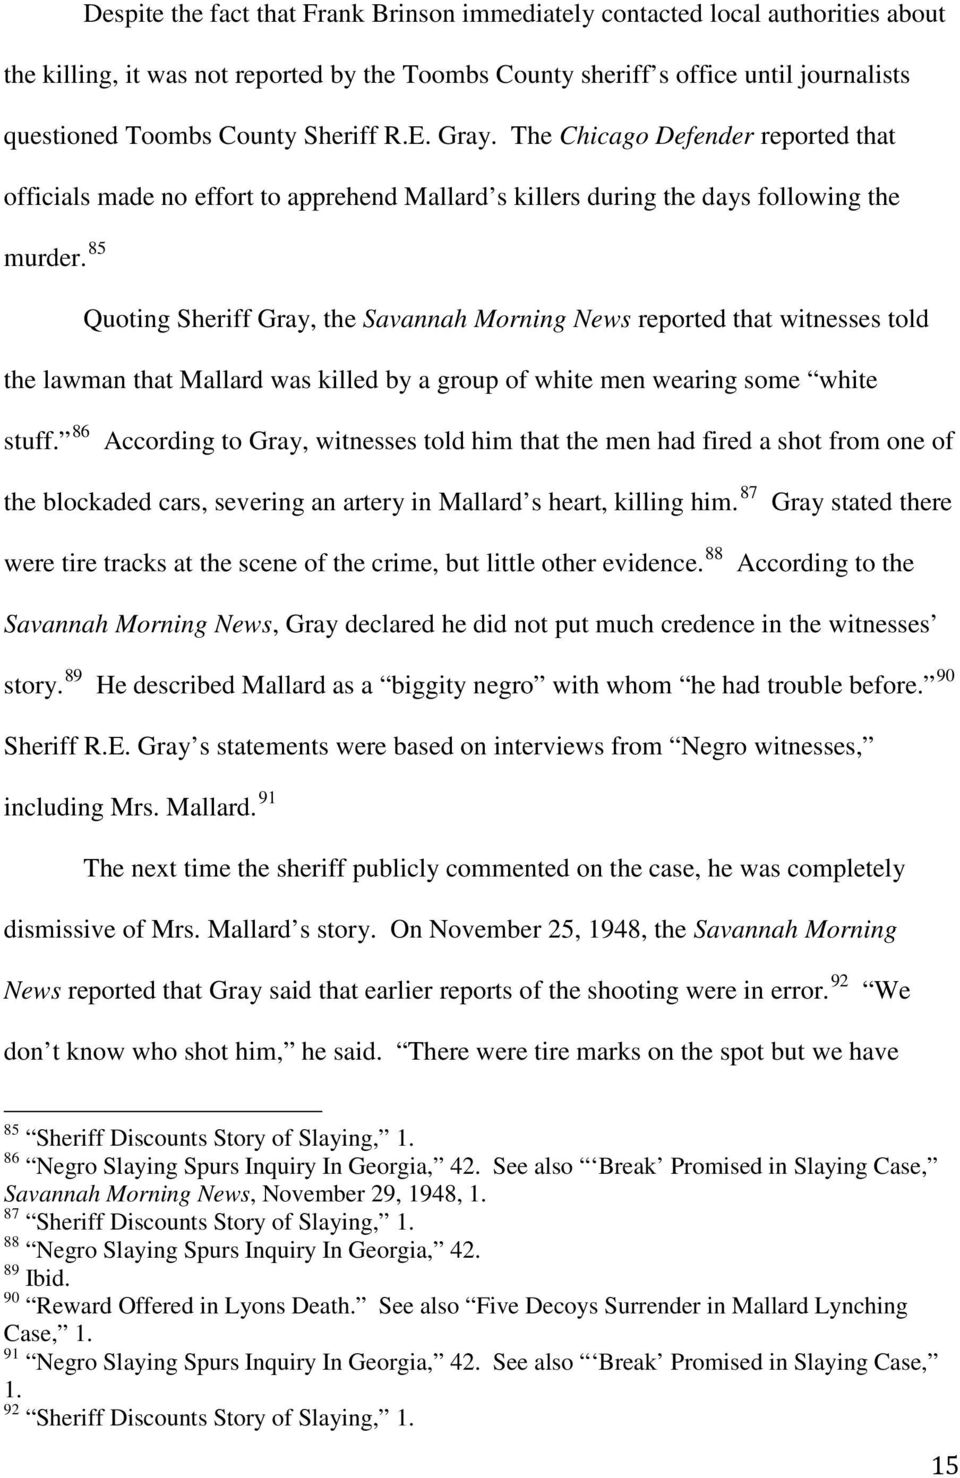 85 Quoting Sheriff Gray, the Savannah Morning News reported that witnesses told the lawman that Mallard was killed by a group of white men wearing some white stuff.